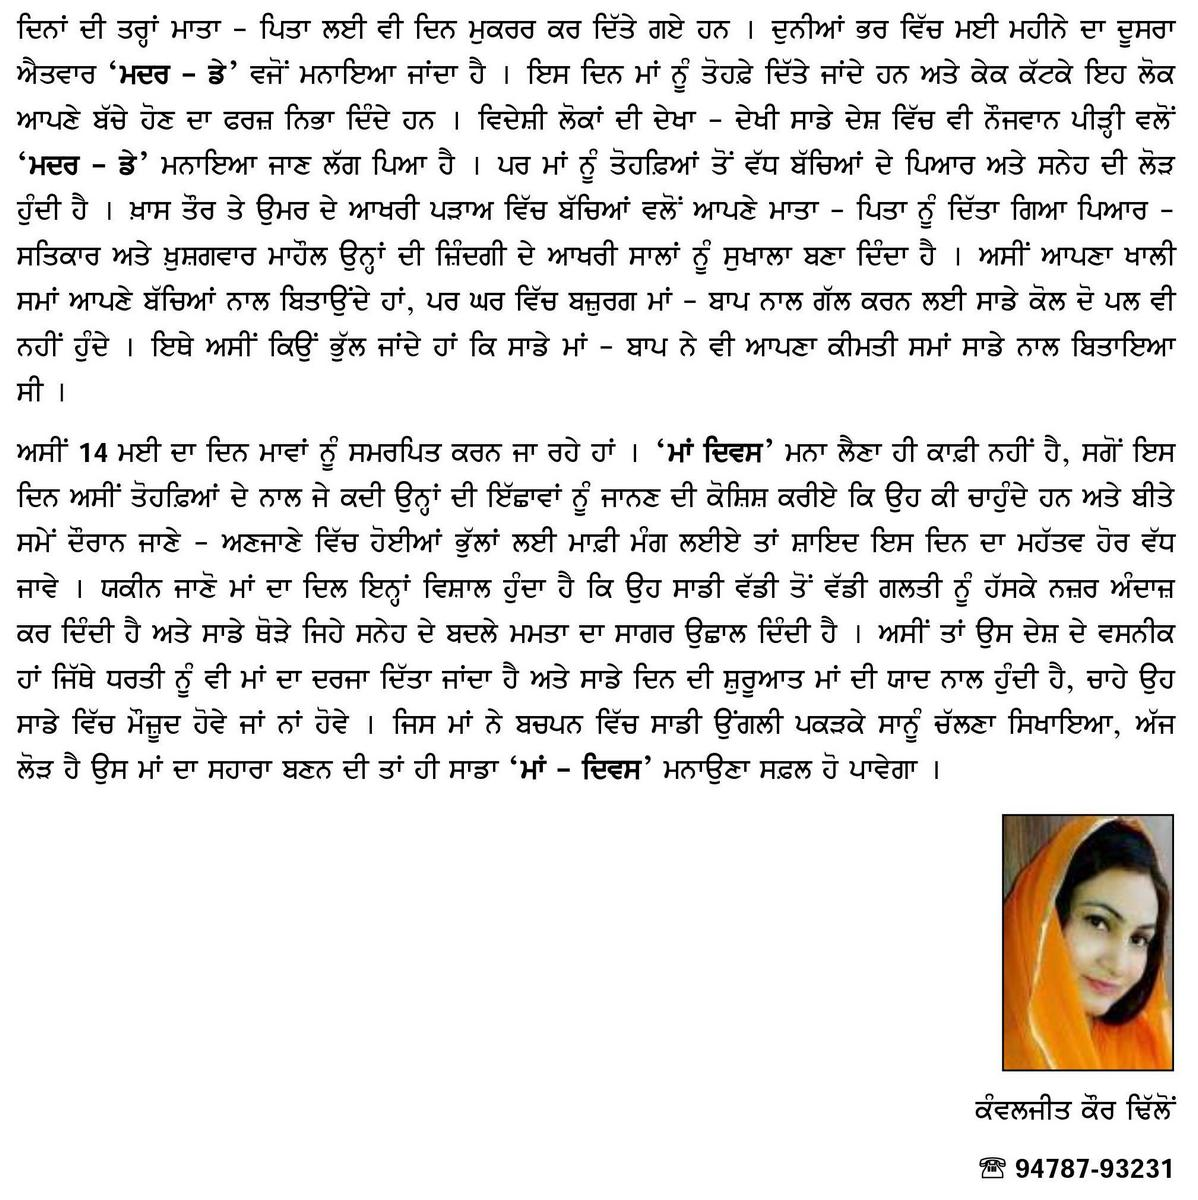 http://sameydiawaaz.com/Lekh/Kanwaljit%20Kaur%20Dhillon%20(Taran%20Taaran)/Kanwaljit%20Kaur%20Dhillon%20-%20Article%20on%20Mother%20Day%20(14%20May%2017)%20-%202.jpg